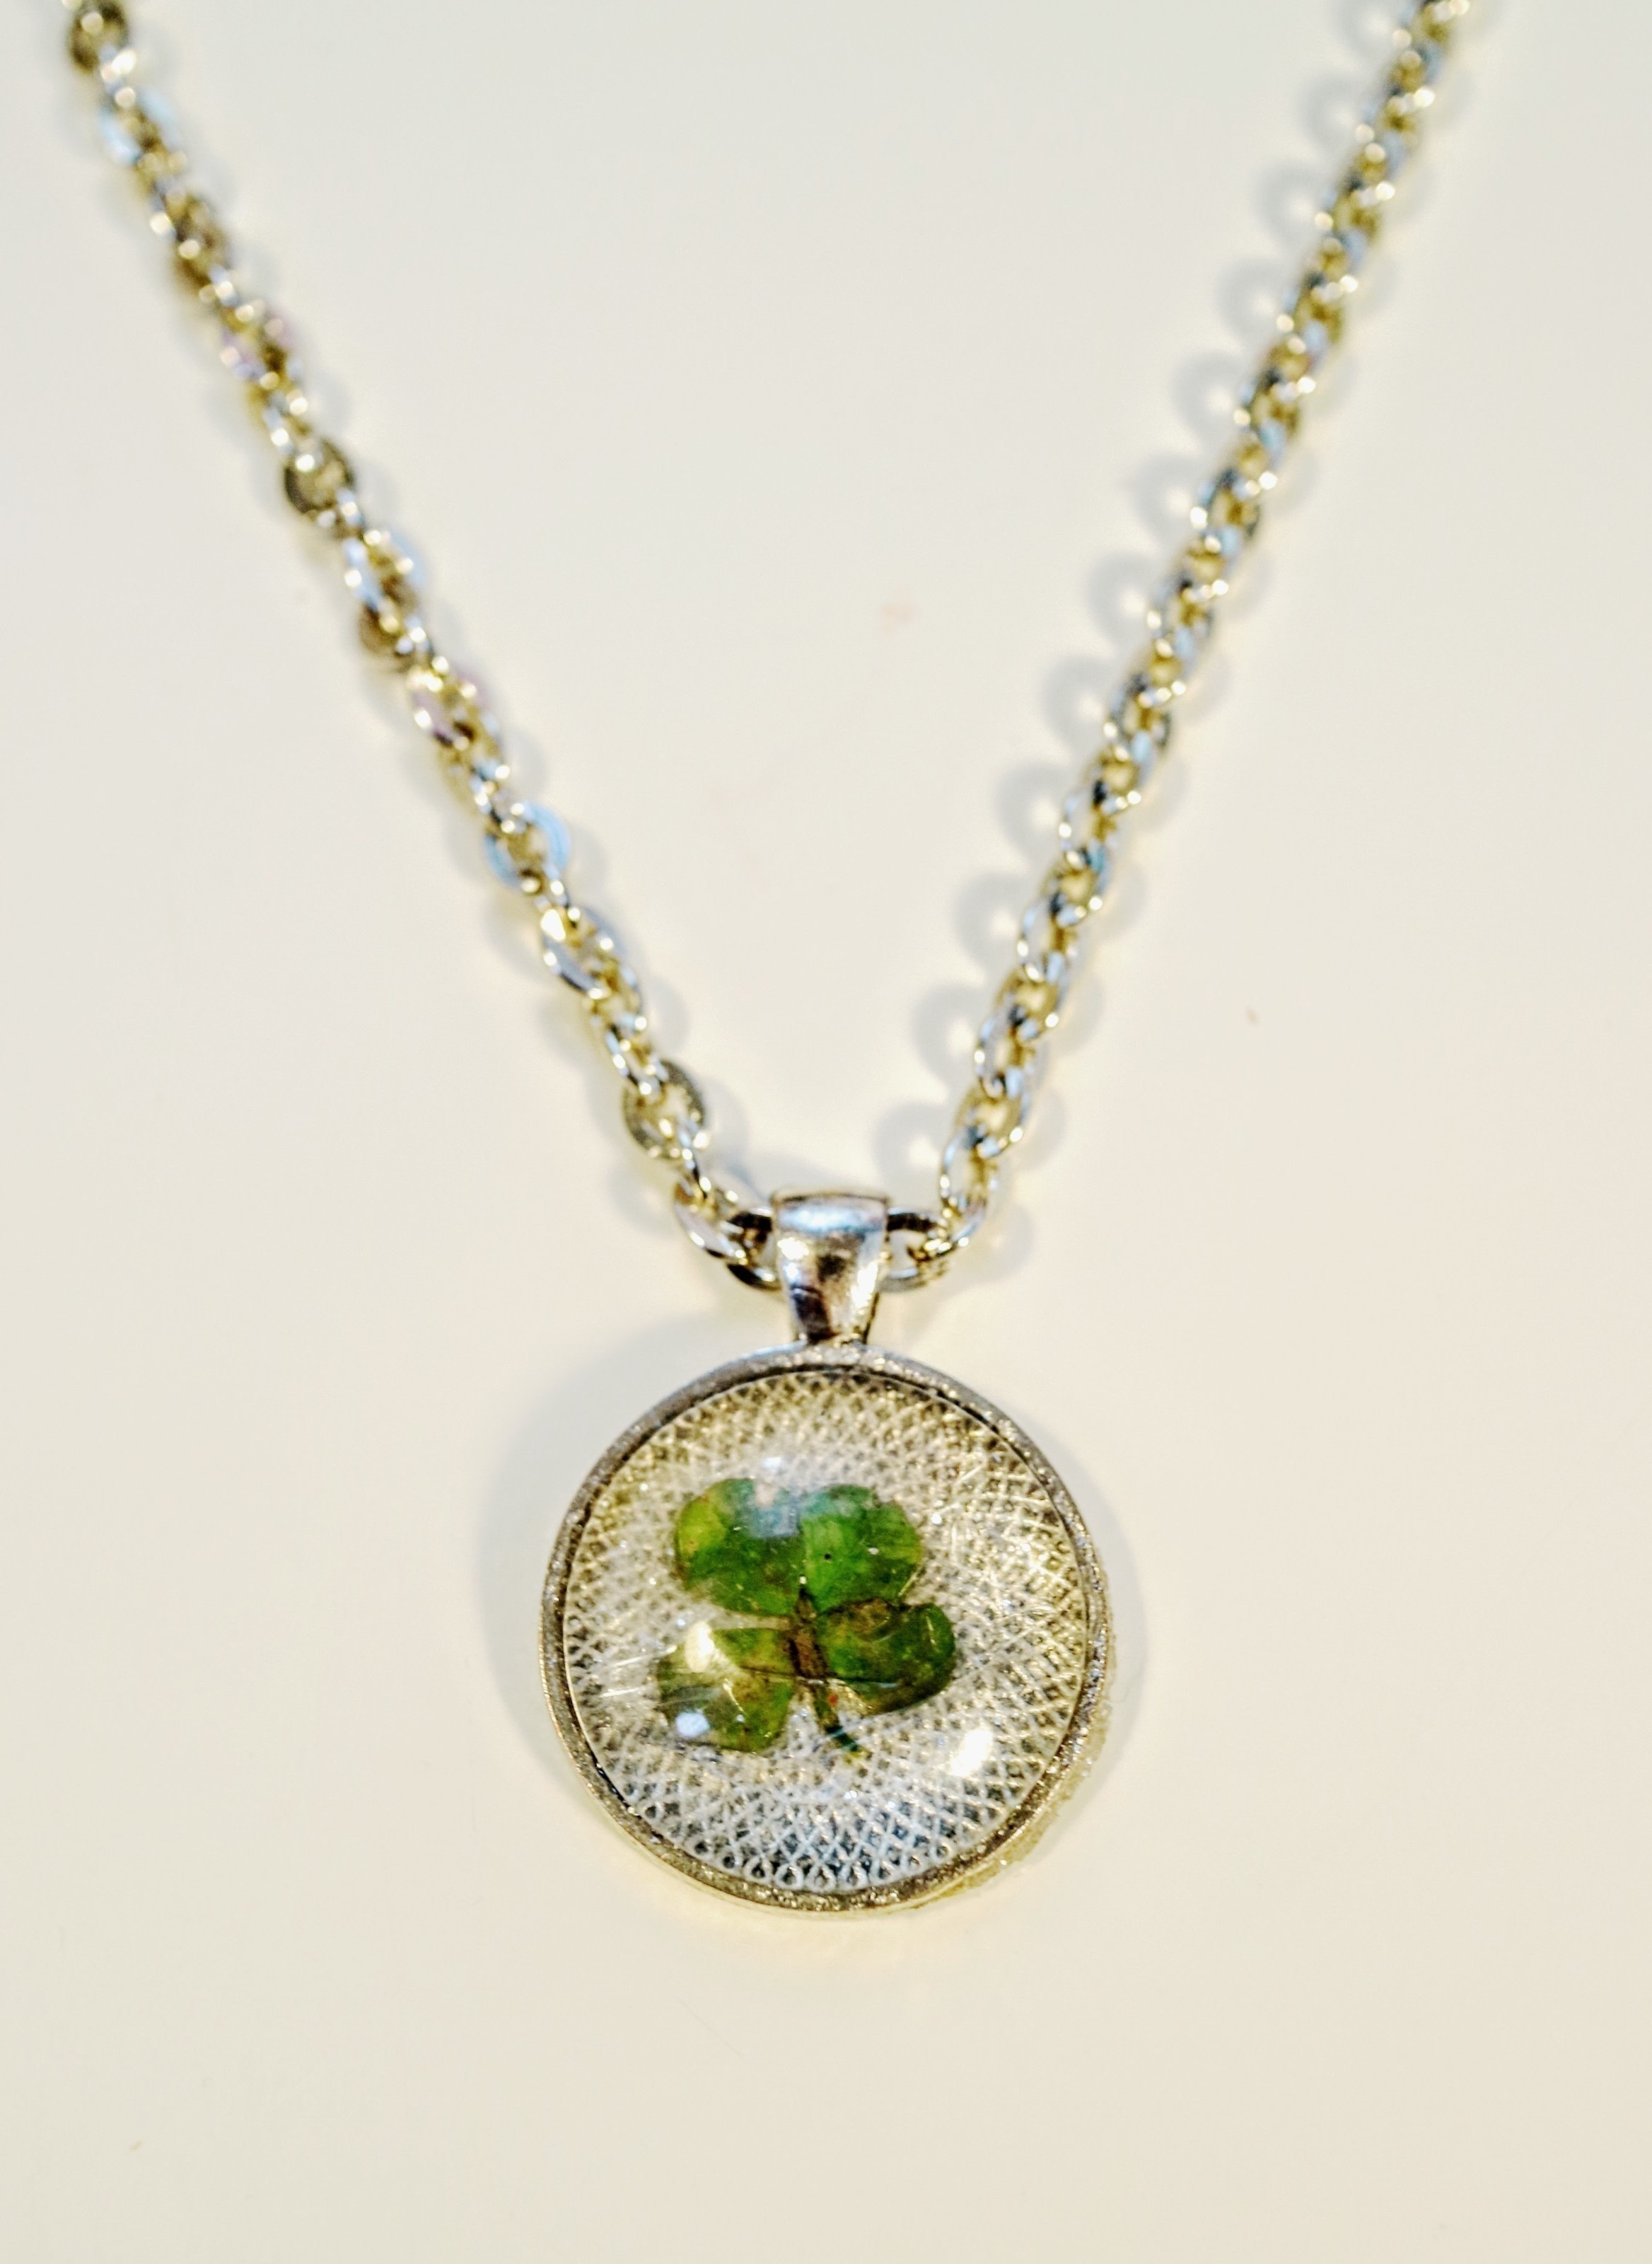 four leaf clover necklace 183 how to make a resin pendant